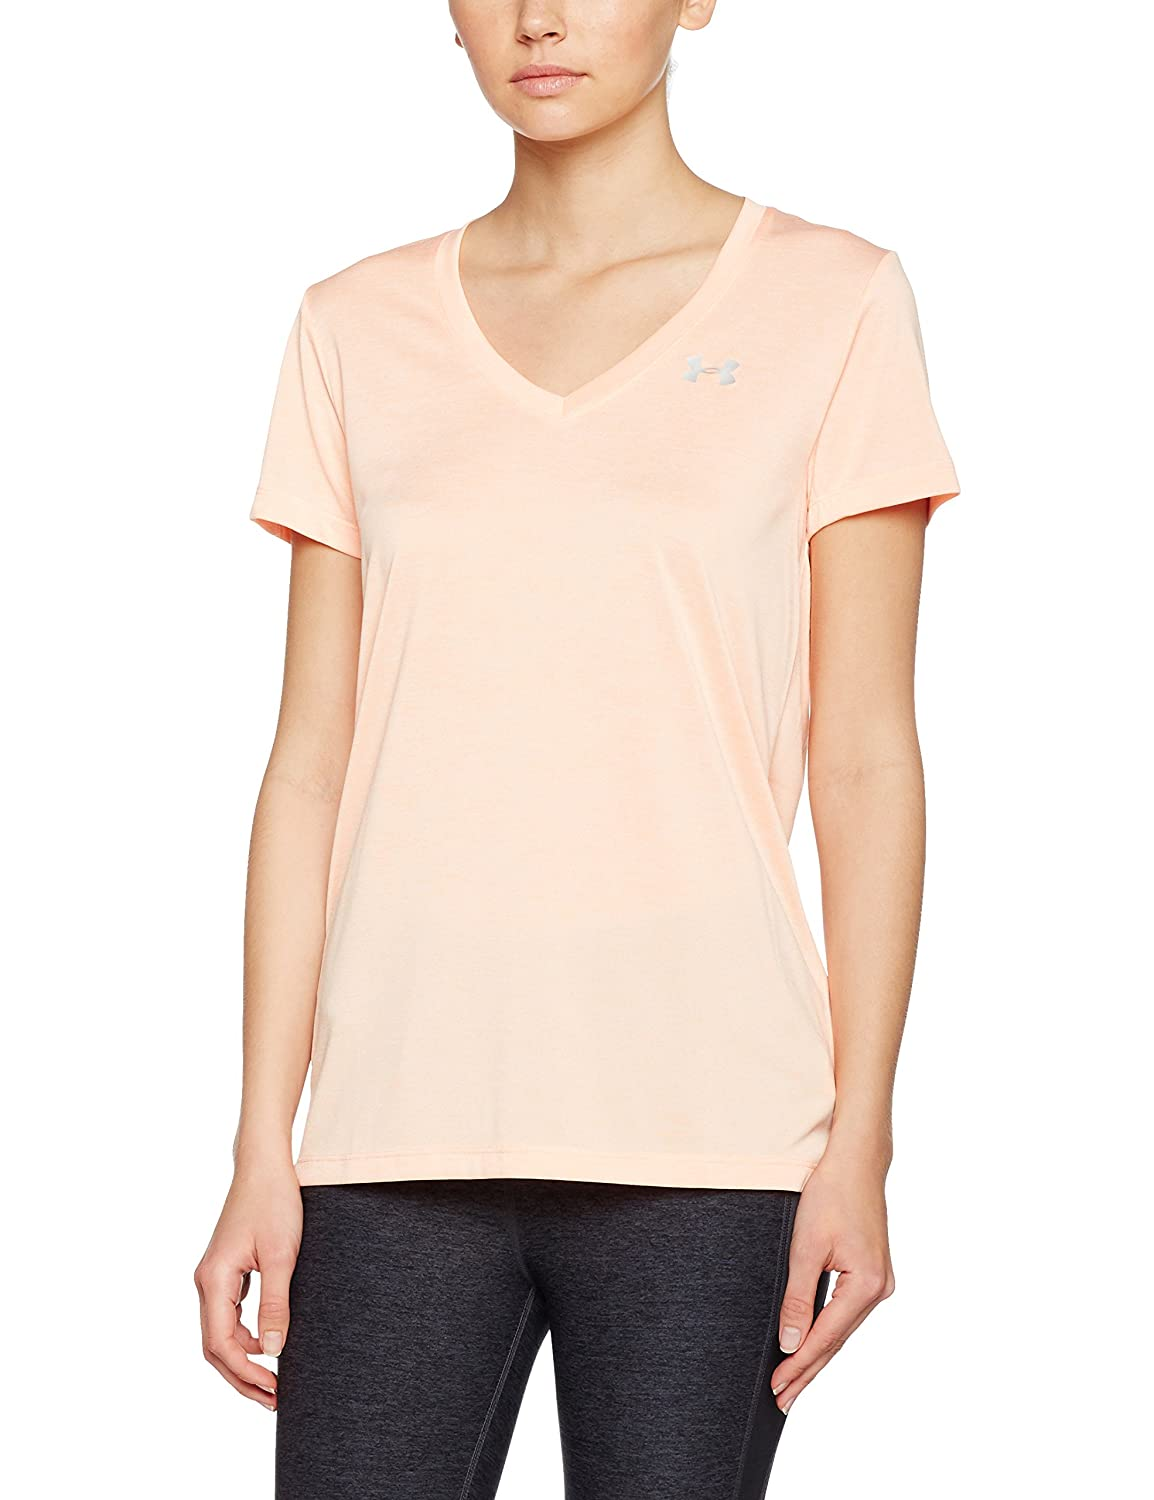 Under Armour Tech Ssv Twist Camiseta Deportiva, Mujer